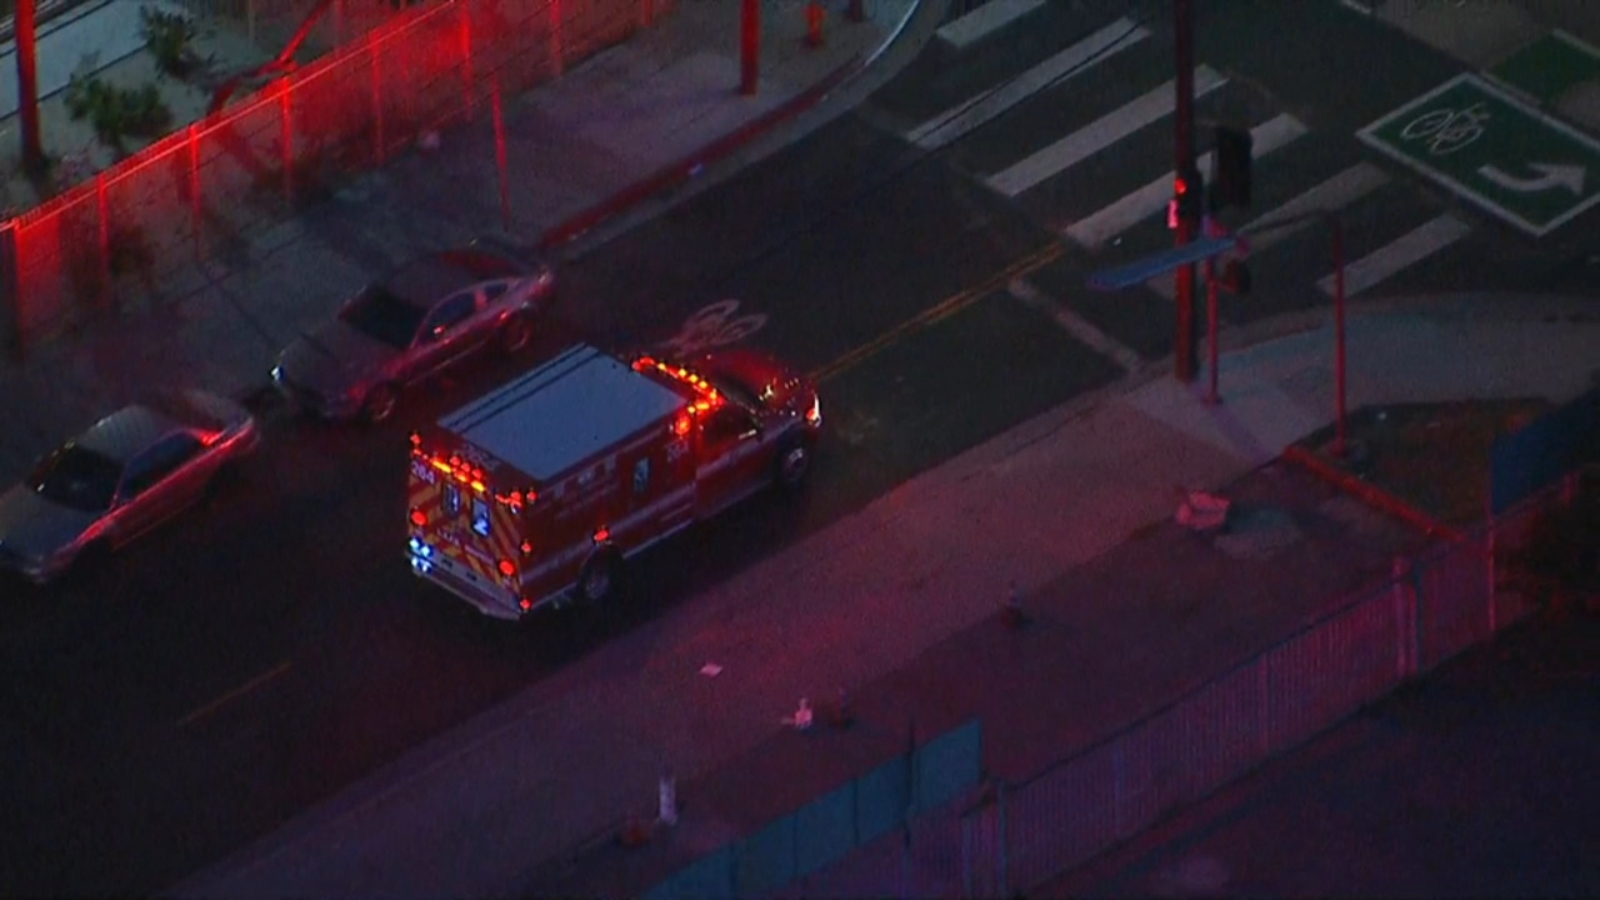 Man killed, young girl injured by gunfire near South Los Angeles motel